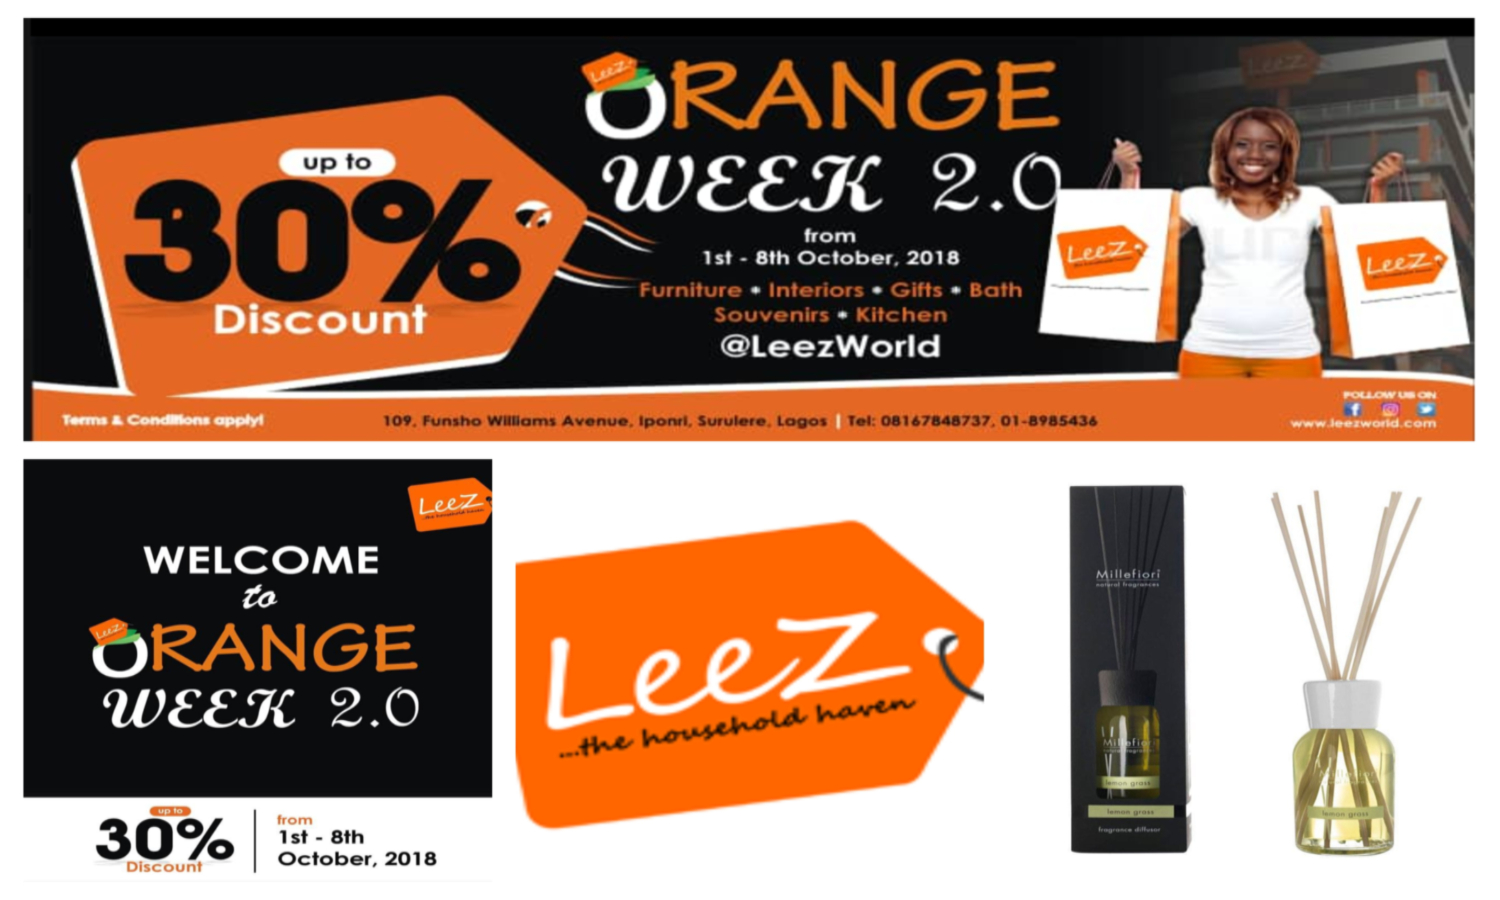 leez world orange week 2.0